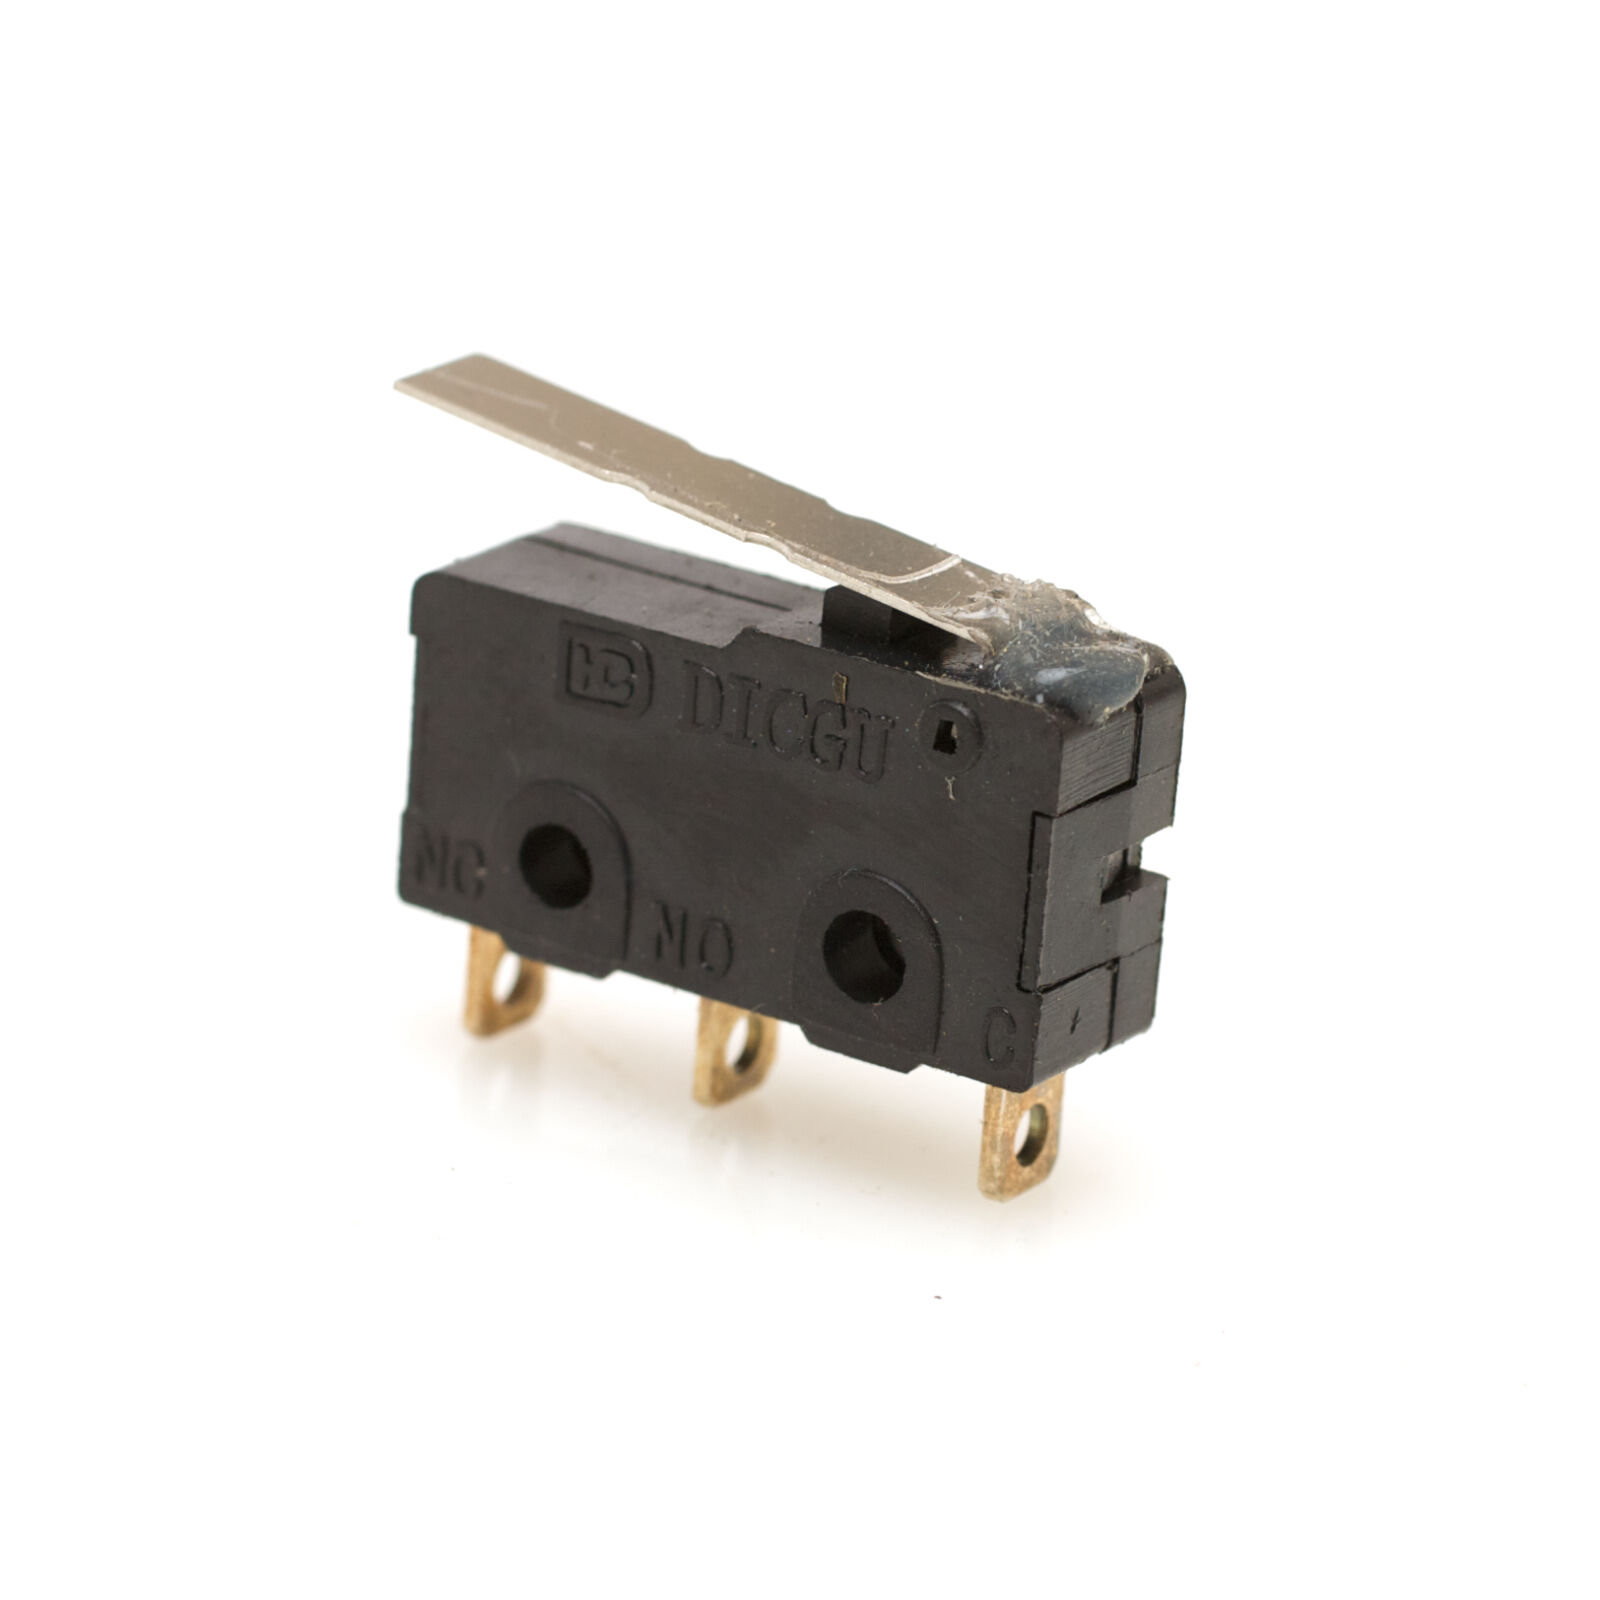 Dicgu Sm3 Lever Micro Switch 595 Picclick Microswitch 1 Of 3free Shipping